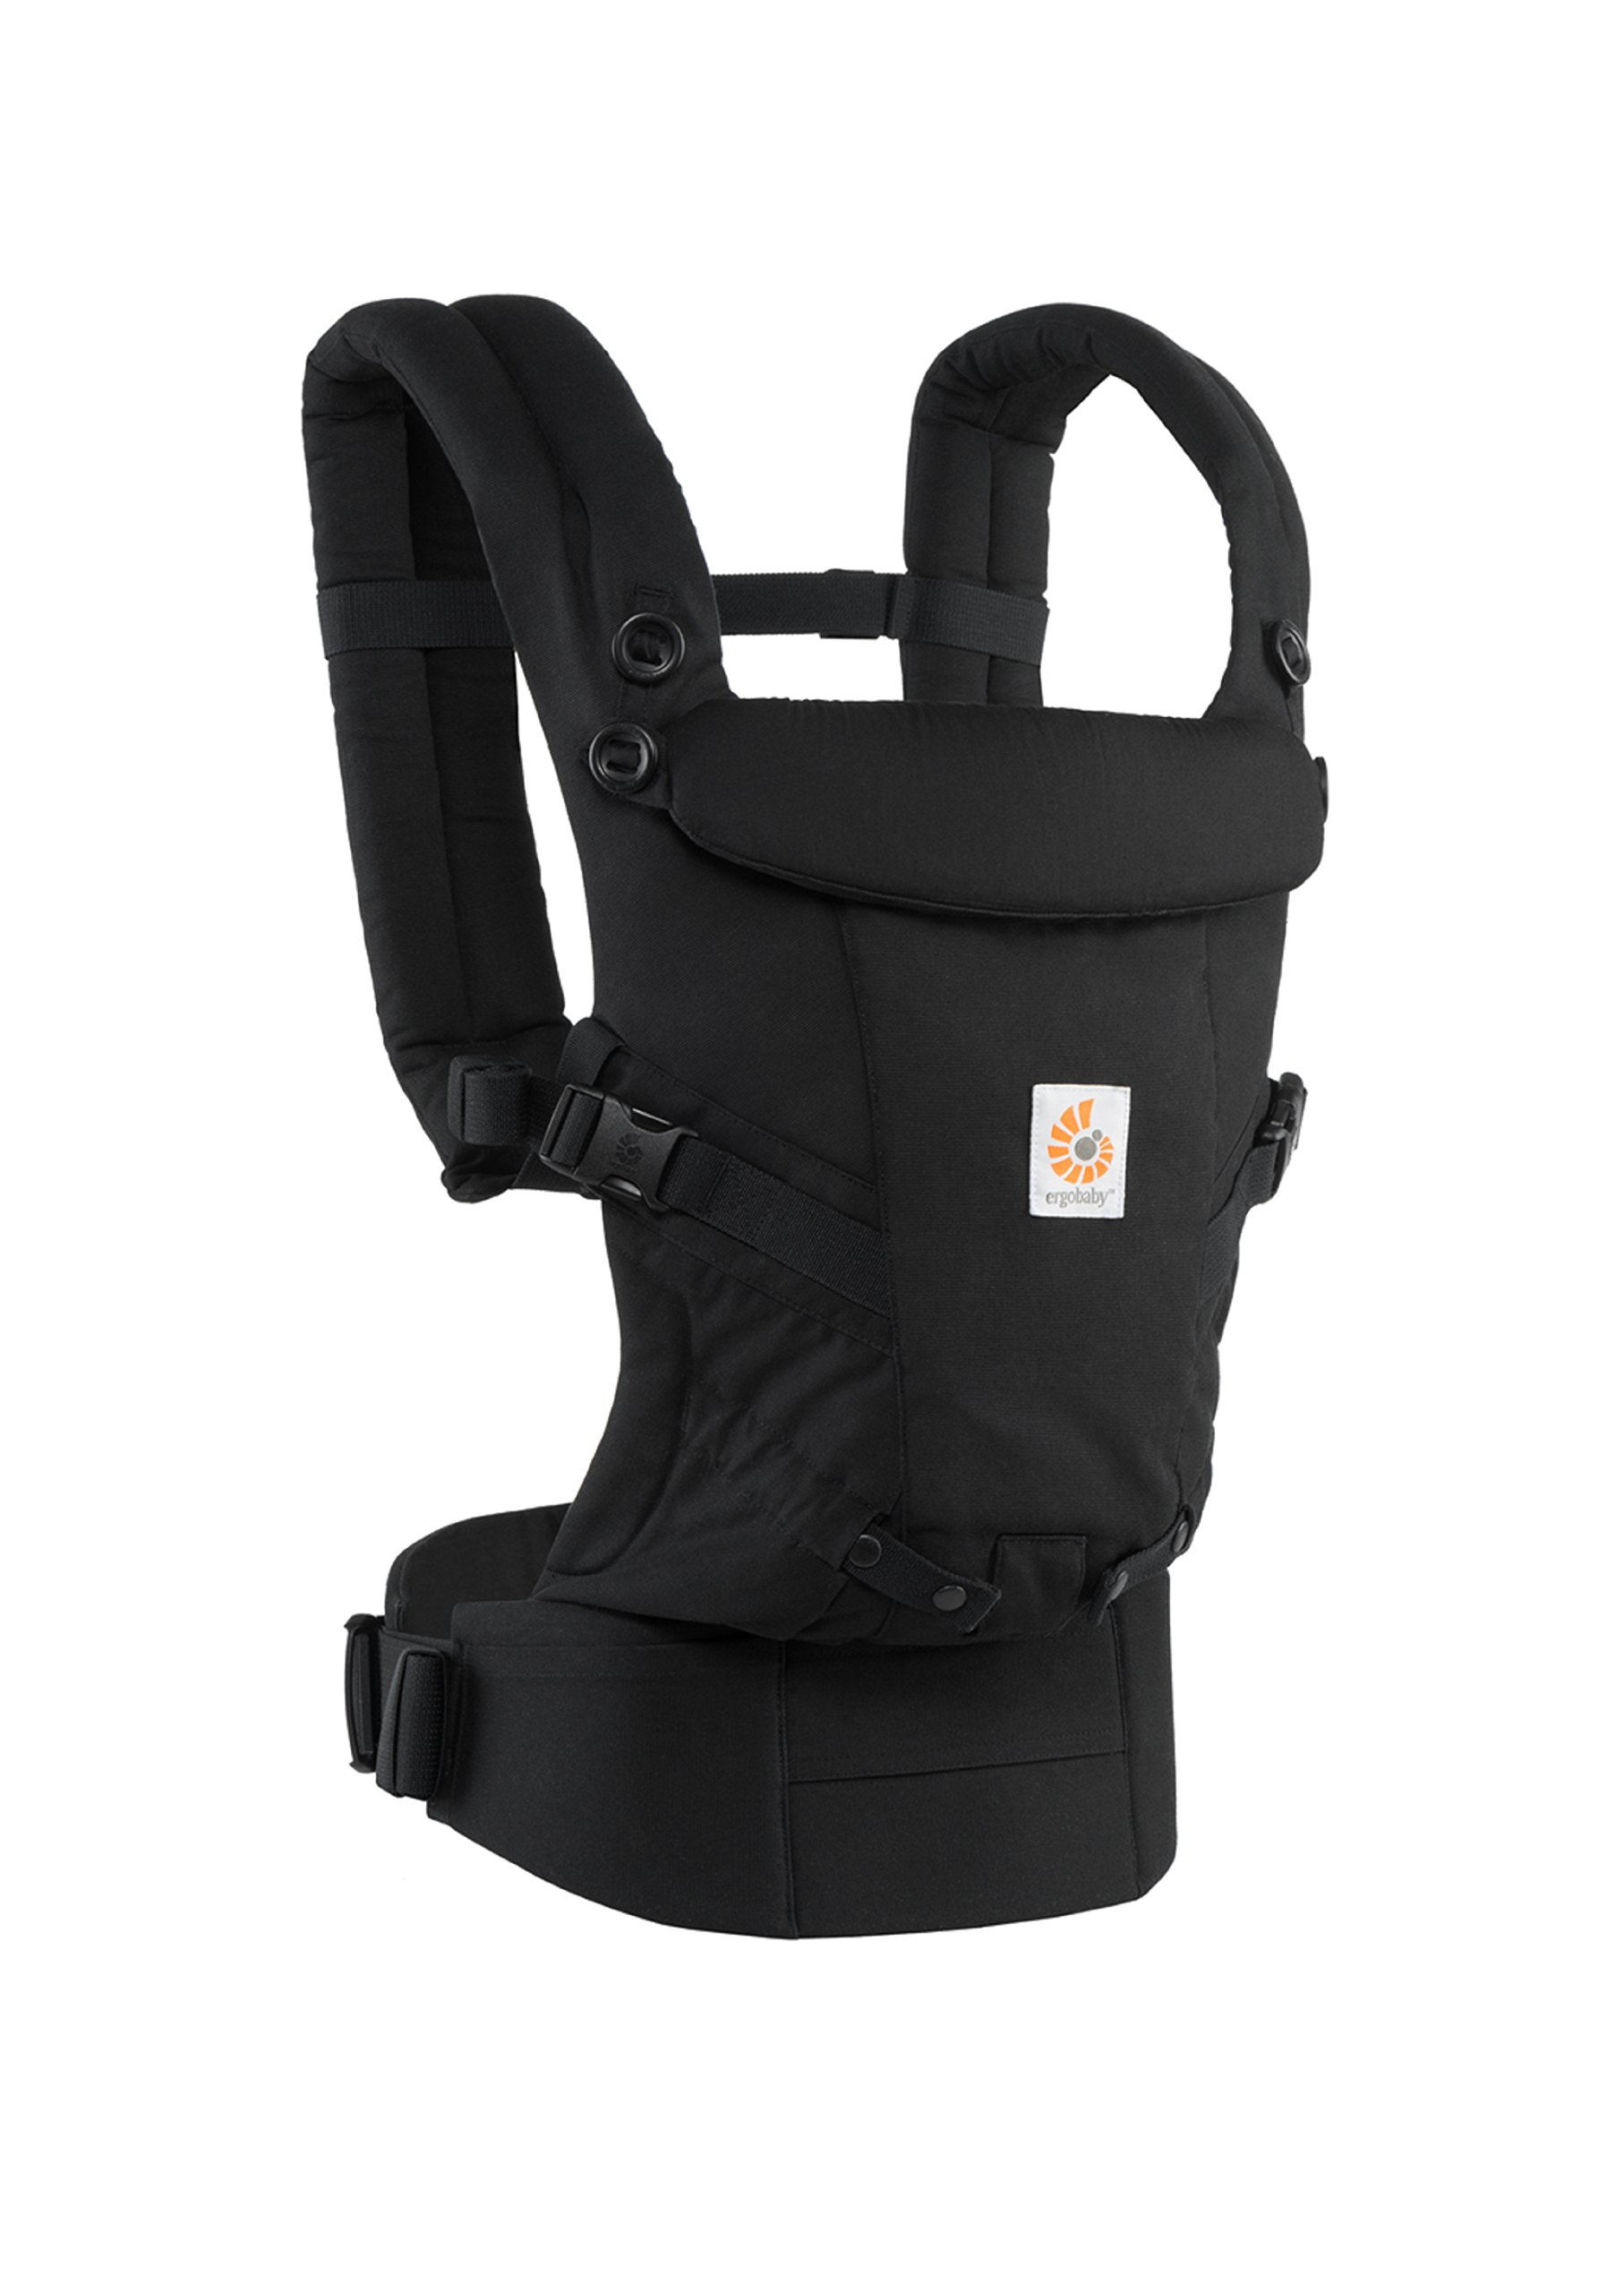 ErgoBaby Adapt Baby Carrier Black Ergobaby Adapt to Every Baby Easy. Adjustable. Newborn to toddler. 3